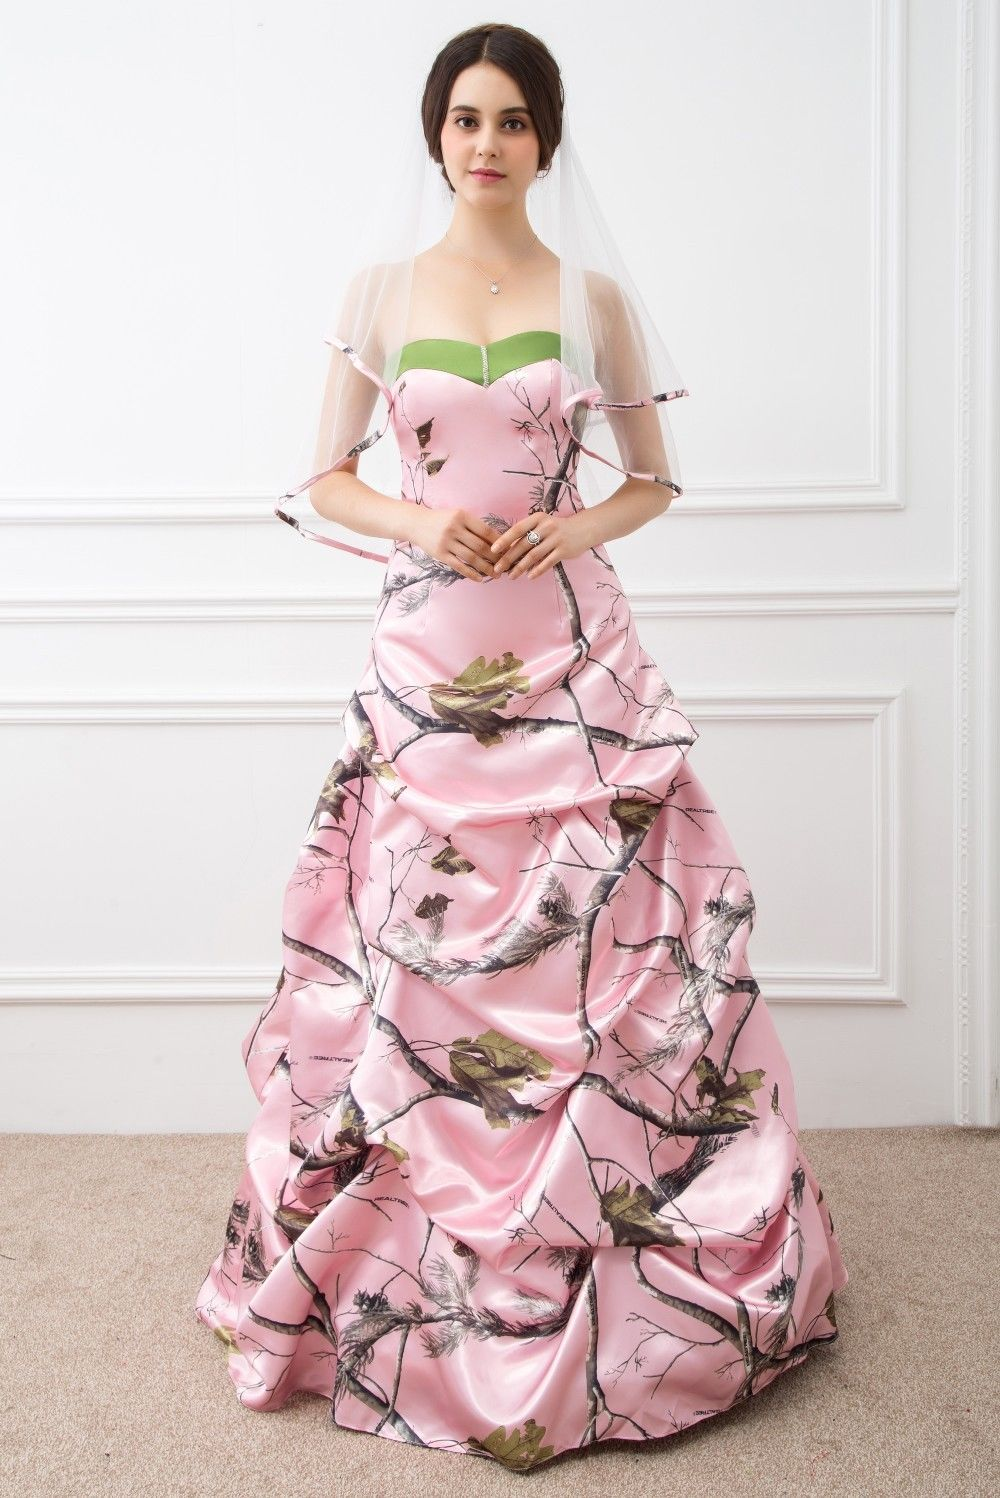 apg realtree camo formal wear realtree wedding dresses Realtree Halter A line wedding gown accented with a camouflage band at the neckline and hemline The detachable train is accented with camouflage roses